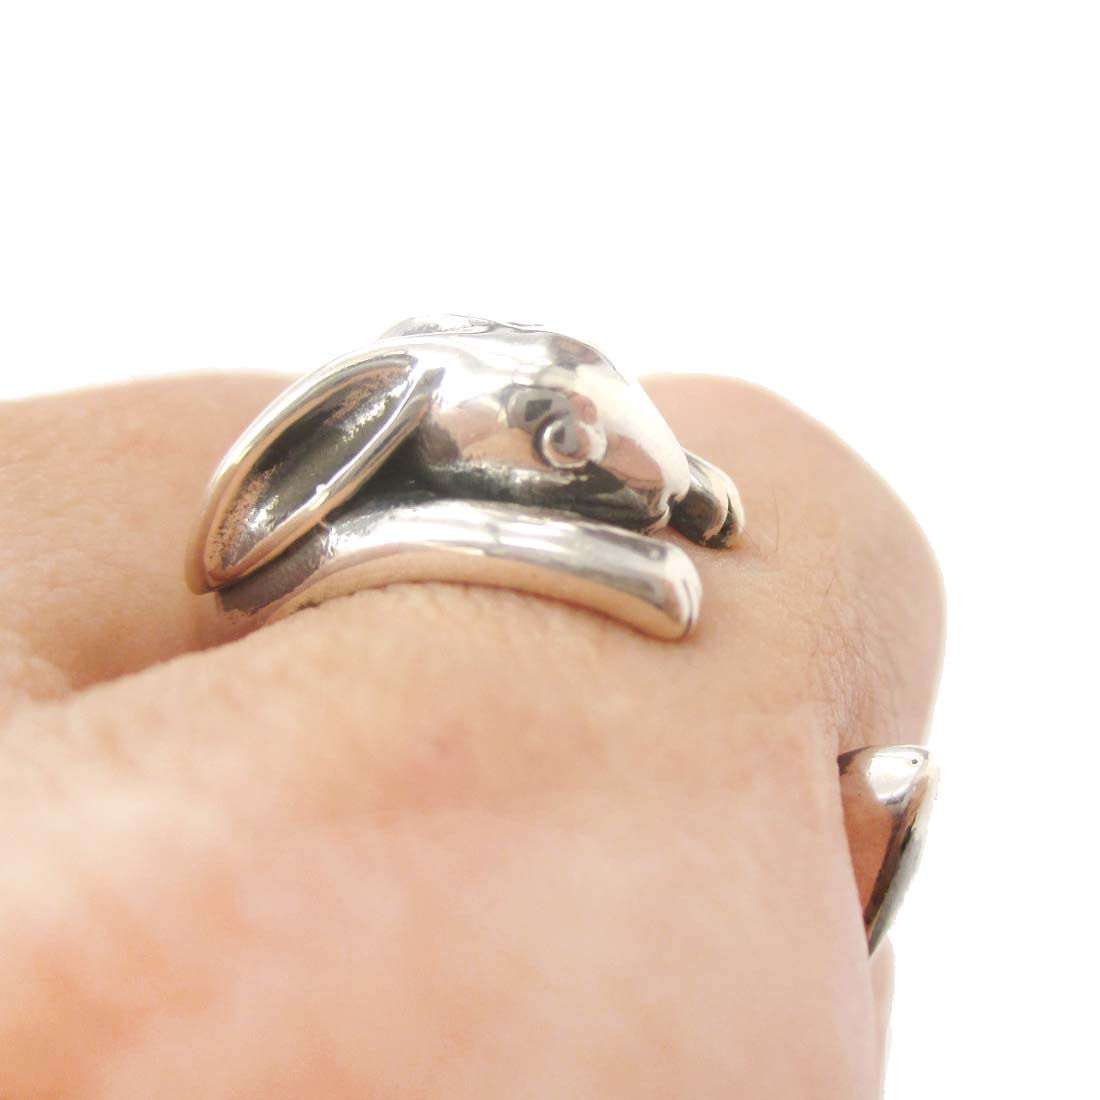 Bunny Rabbit Animal Wrap Around Hug Ring in Solid 925 Sterling Silver - US Sizes 4 to 8.5 Available